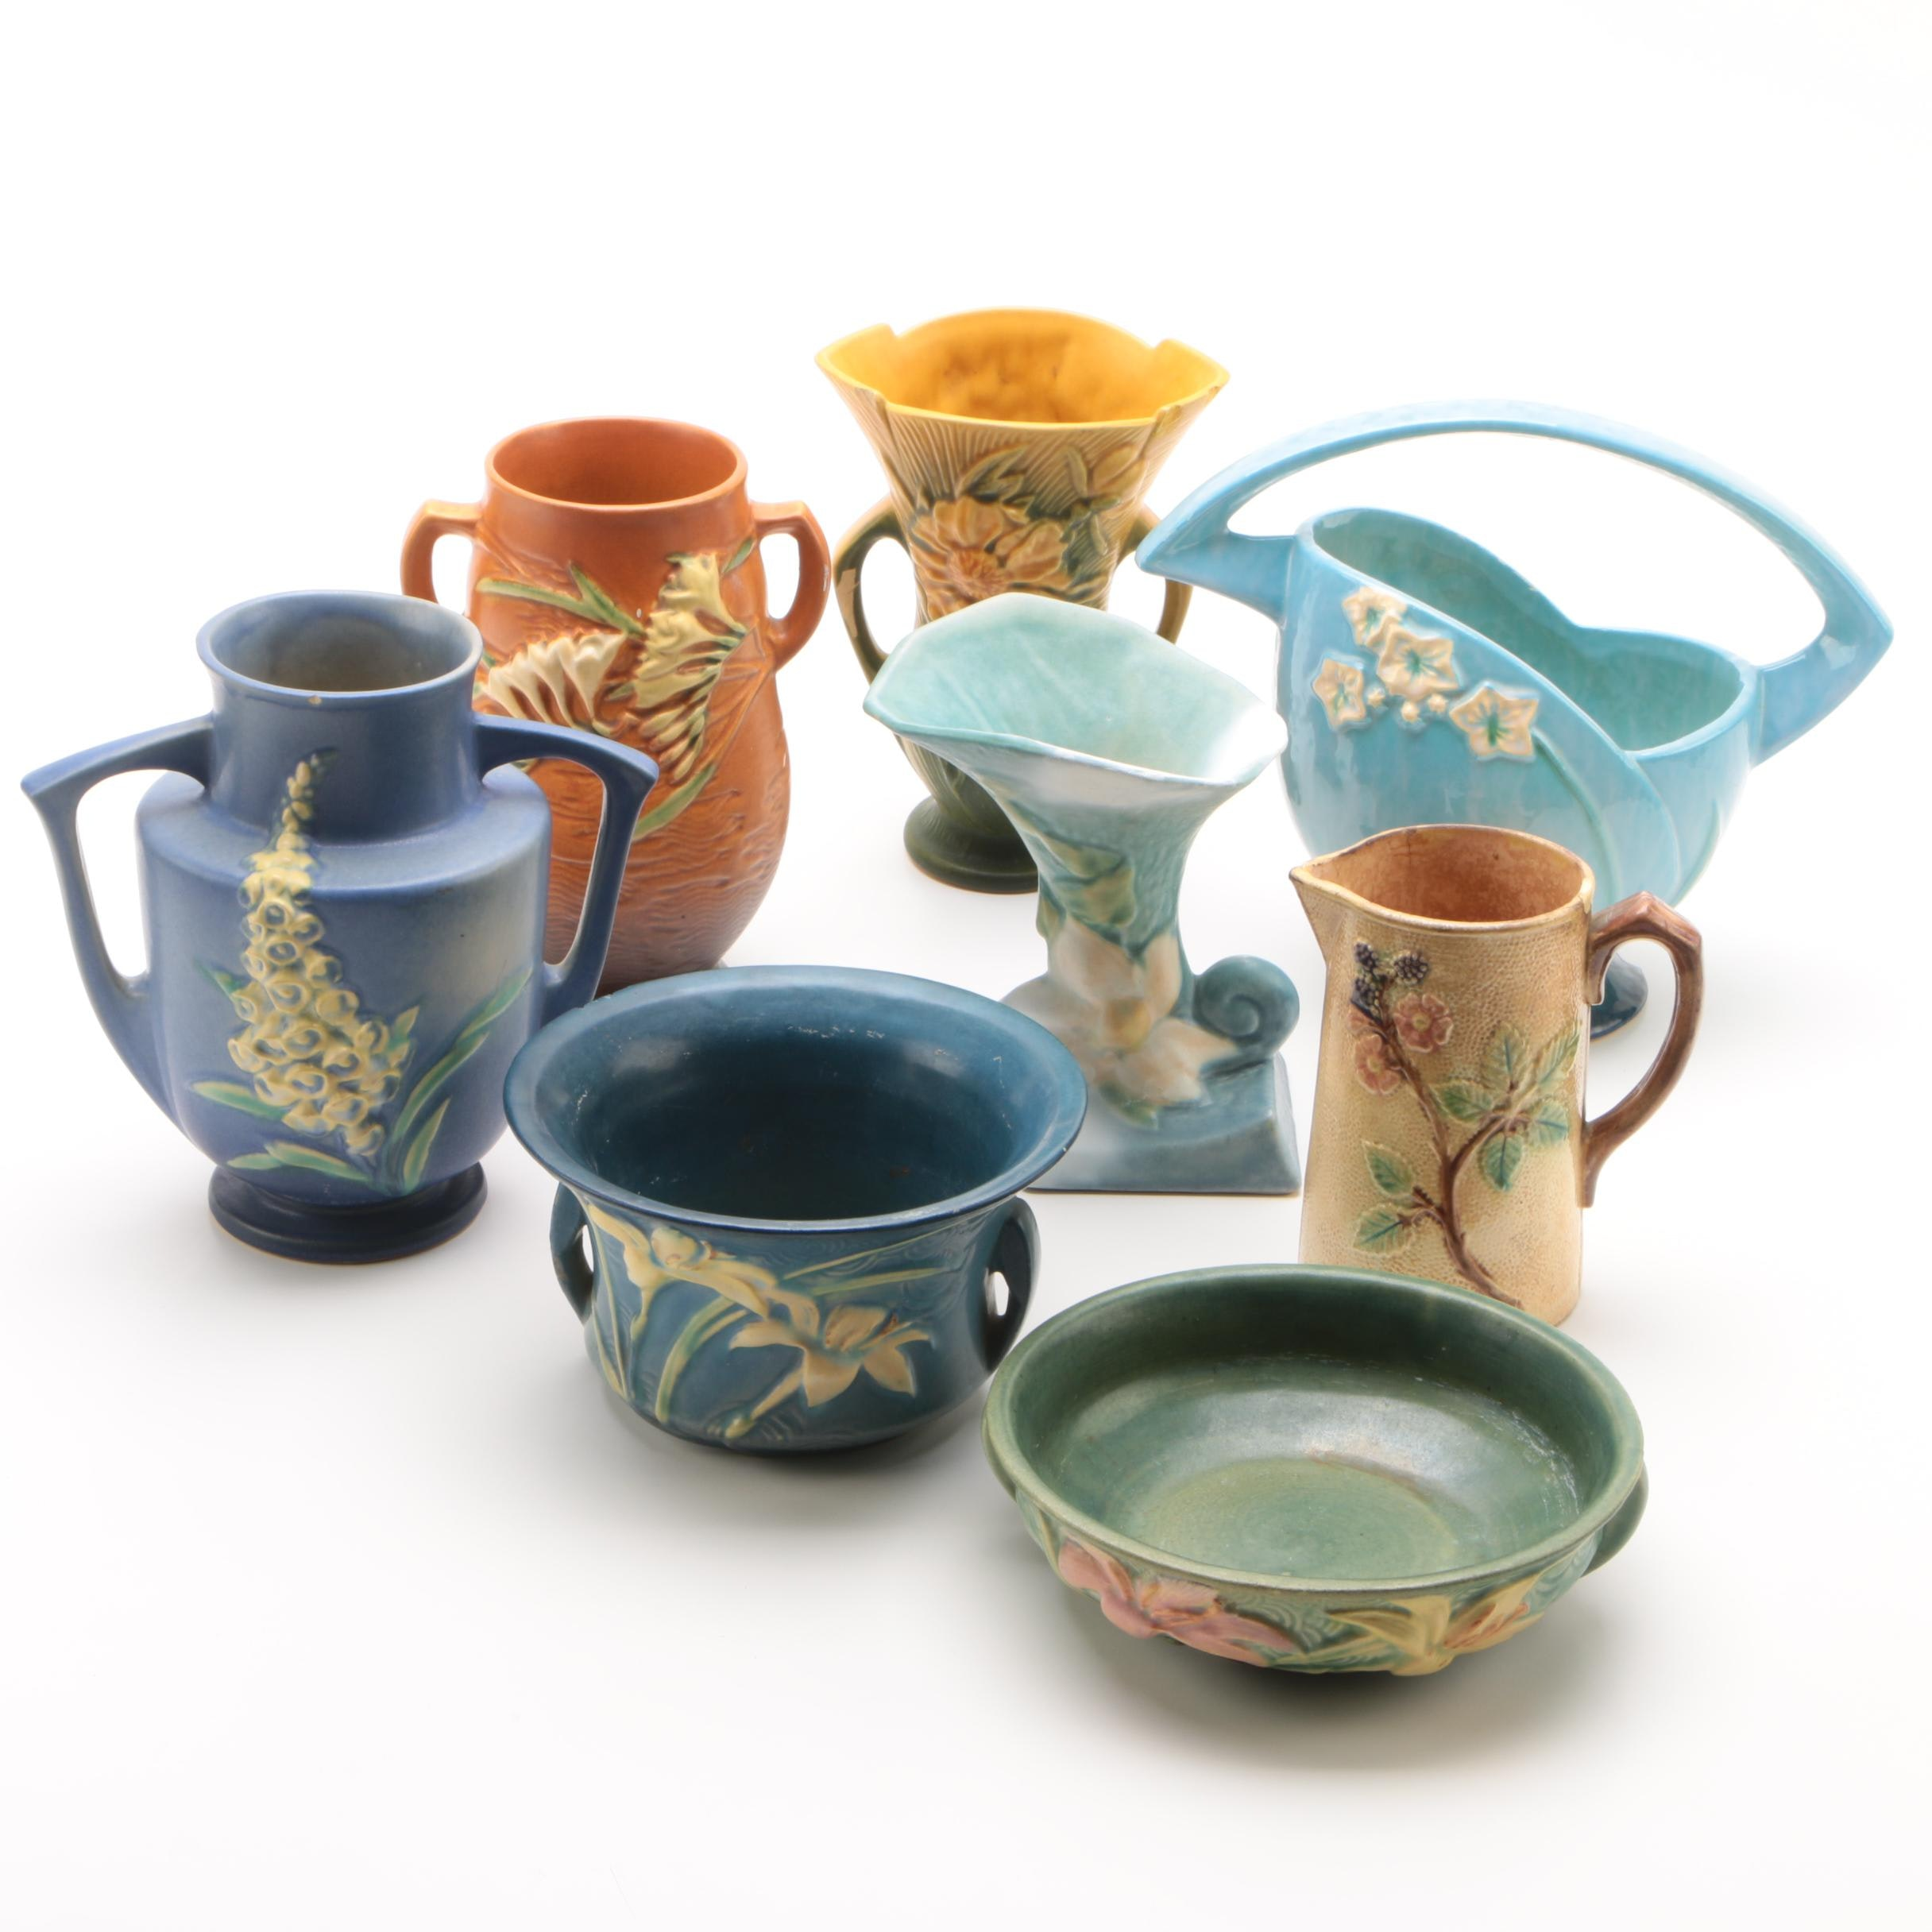 Roseville Pottery with Antique Majolica Pitcher